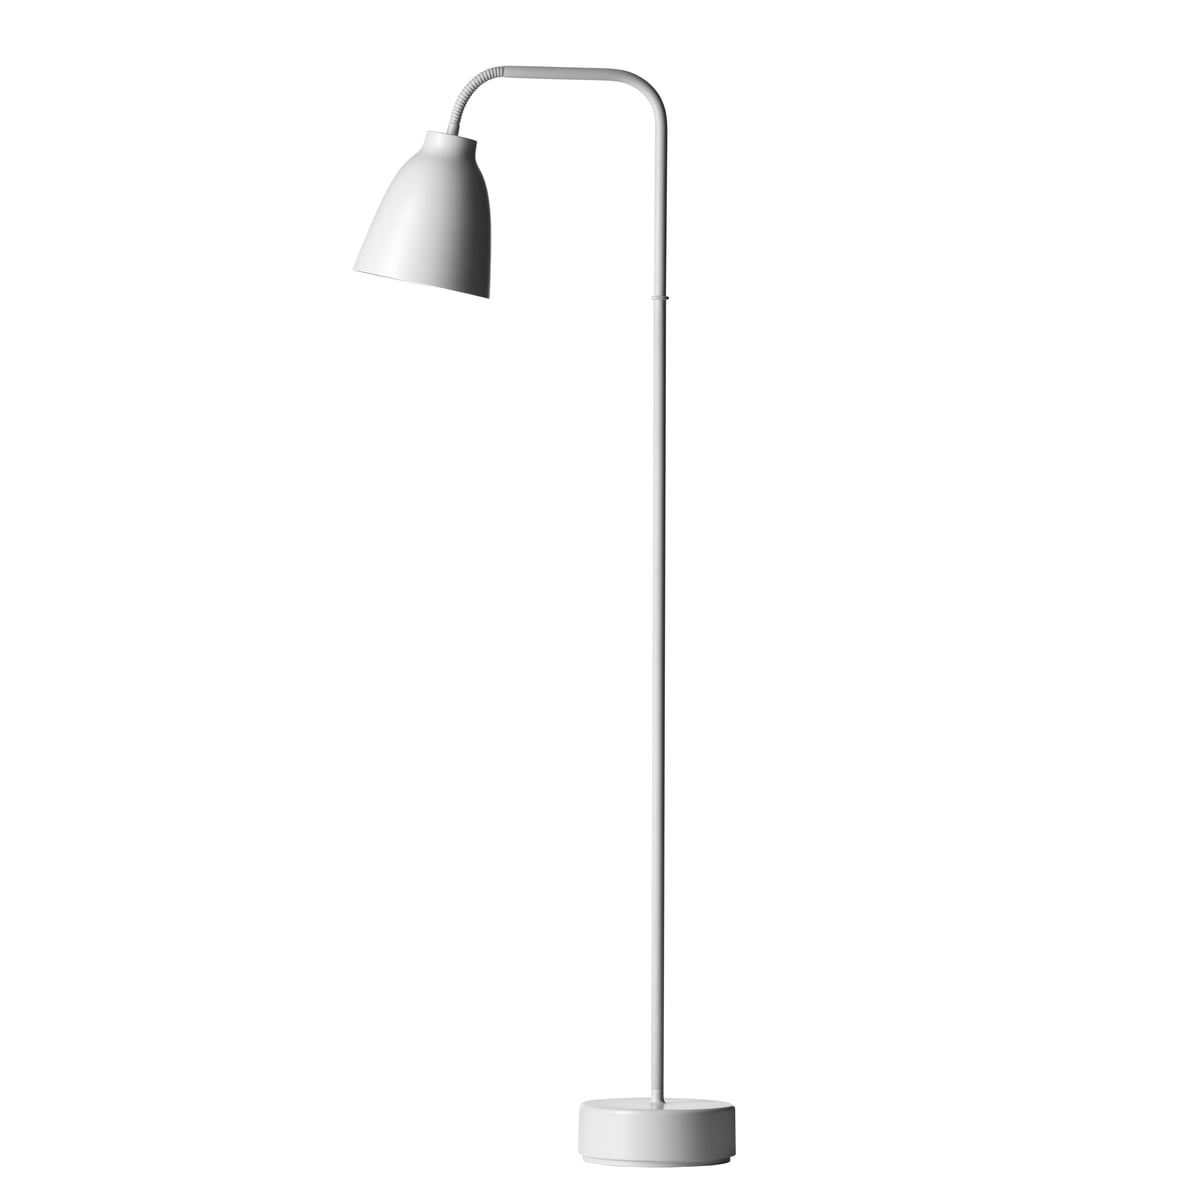 Caravaggio floor lamp read by lightyears caravaggio floor lamp read by lightyears in grey mozeypictures Images